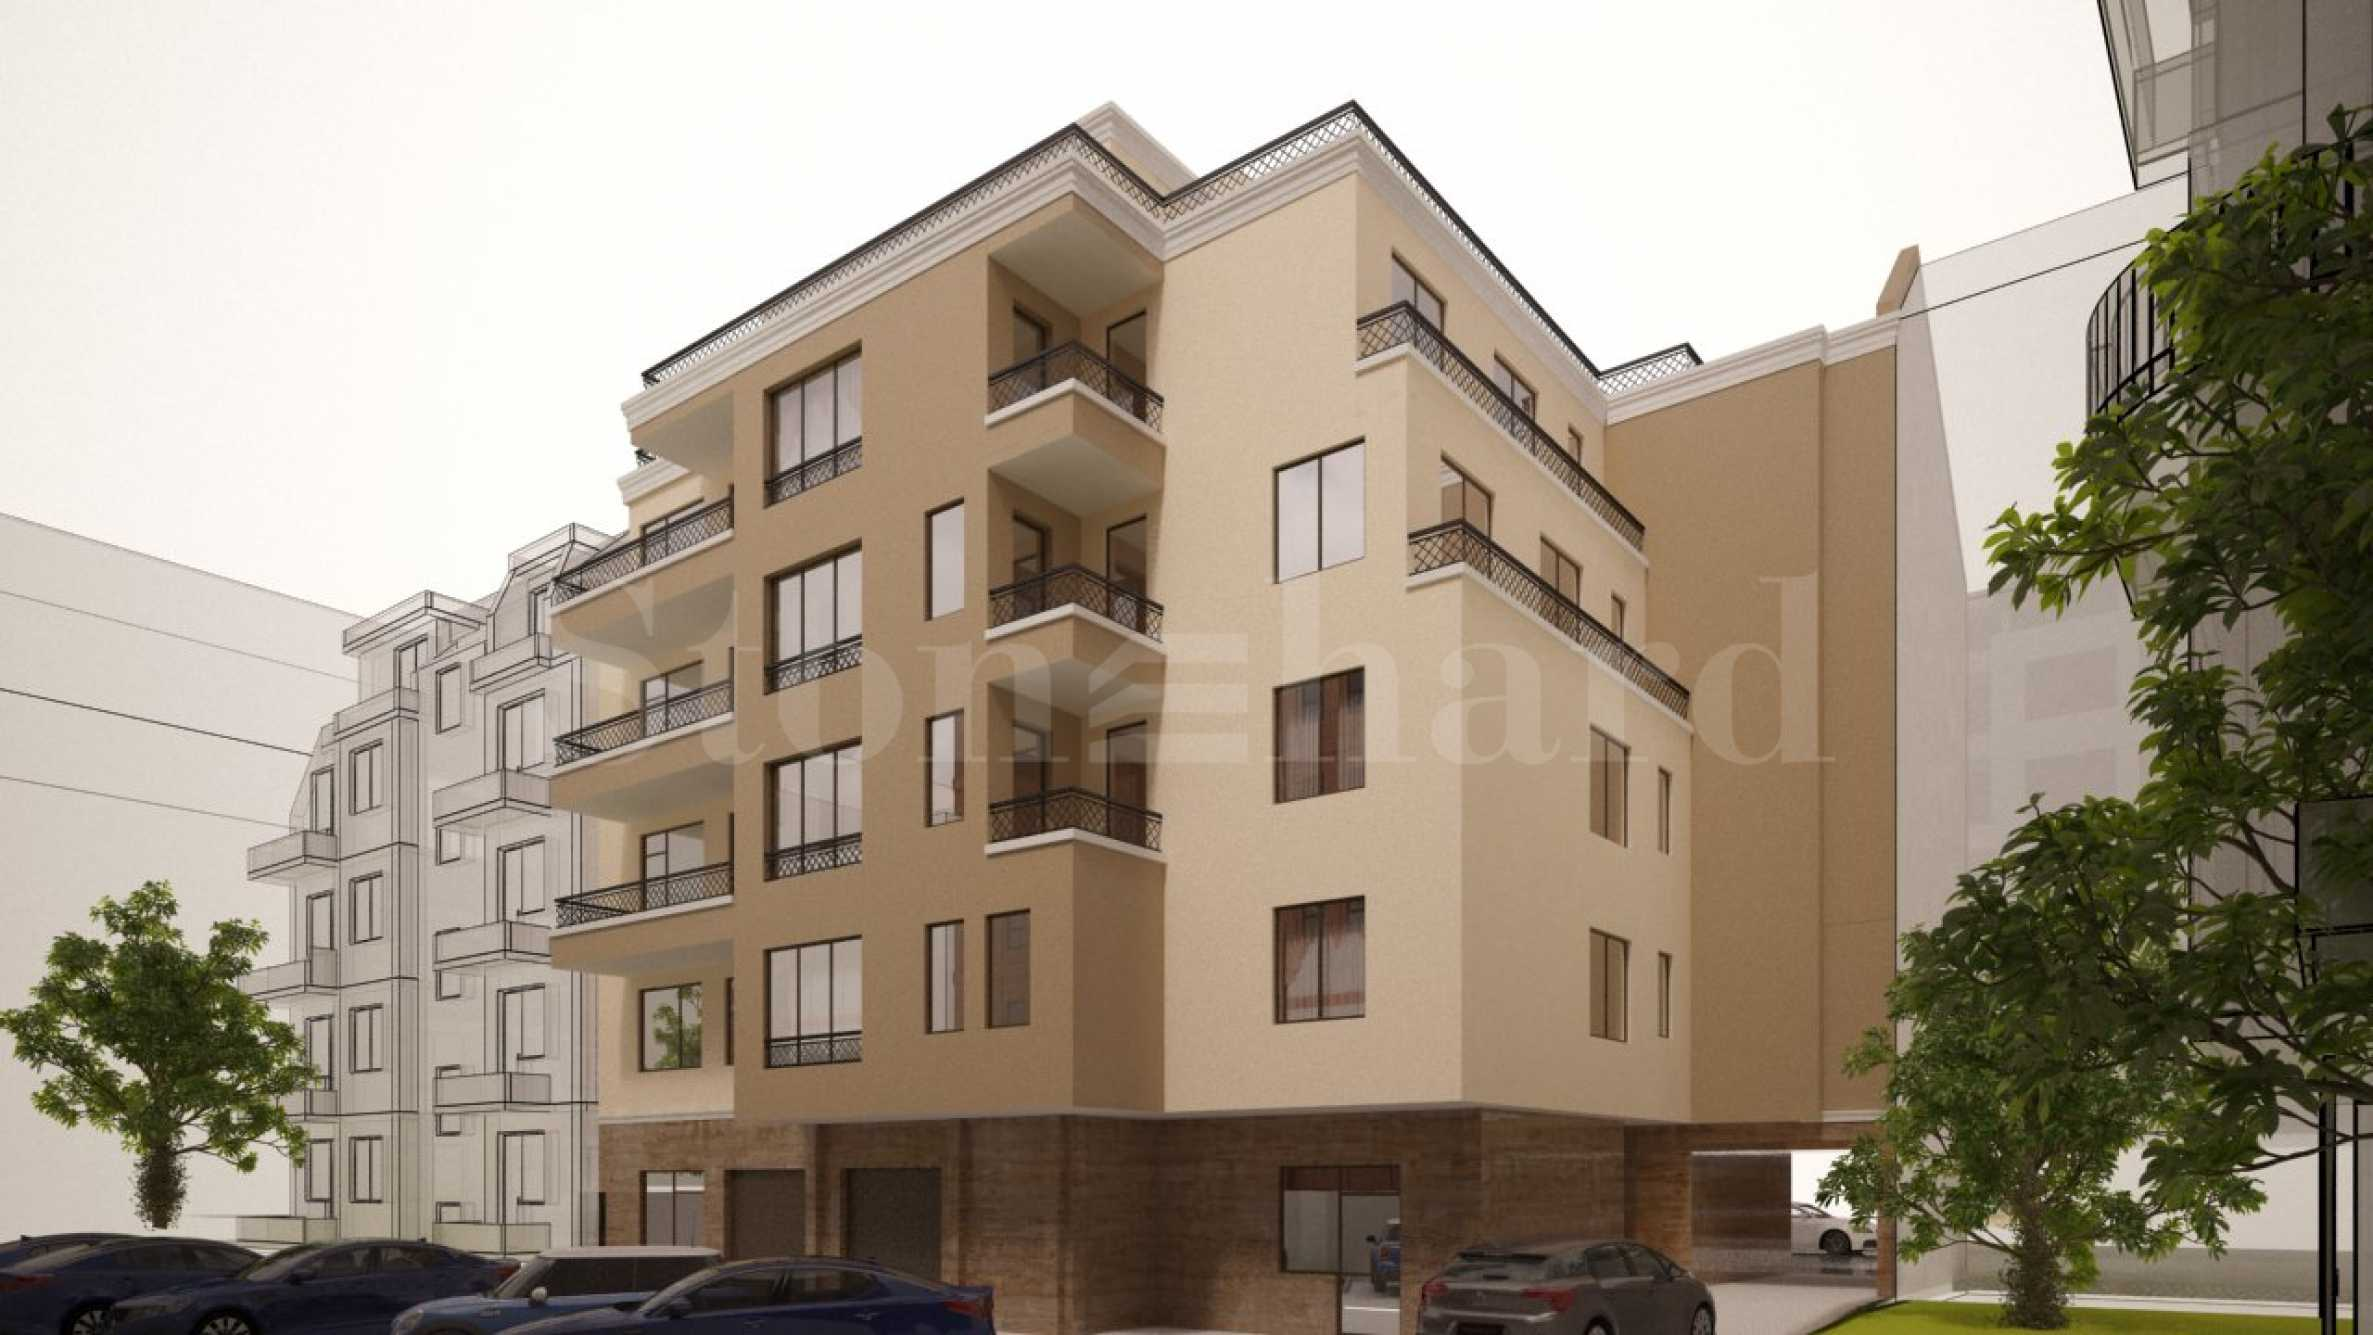 New elegant 5-storey building near the park in Burgas 2 - Stonehard